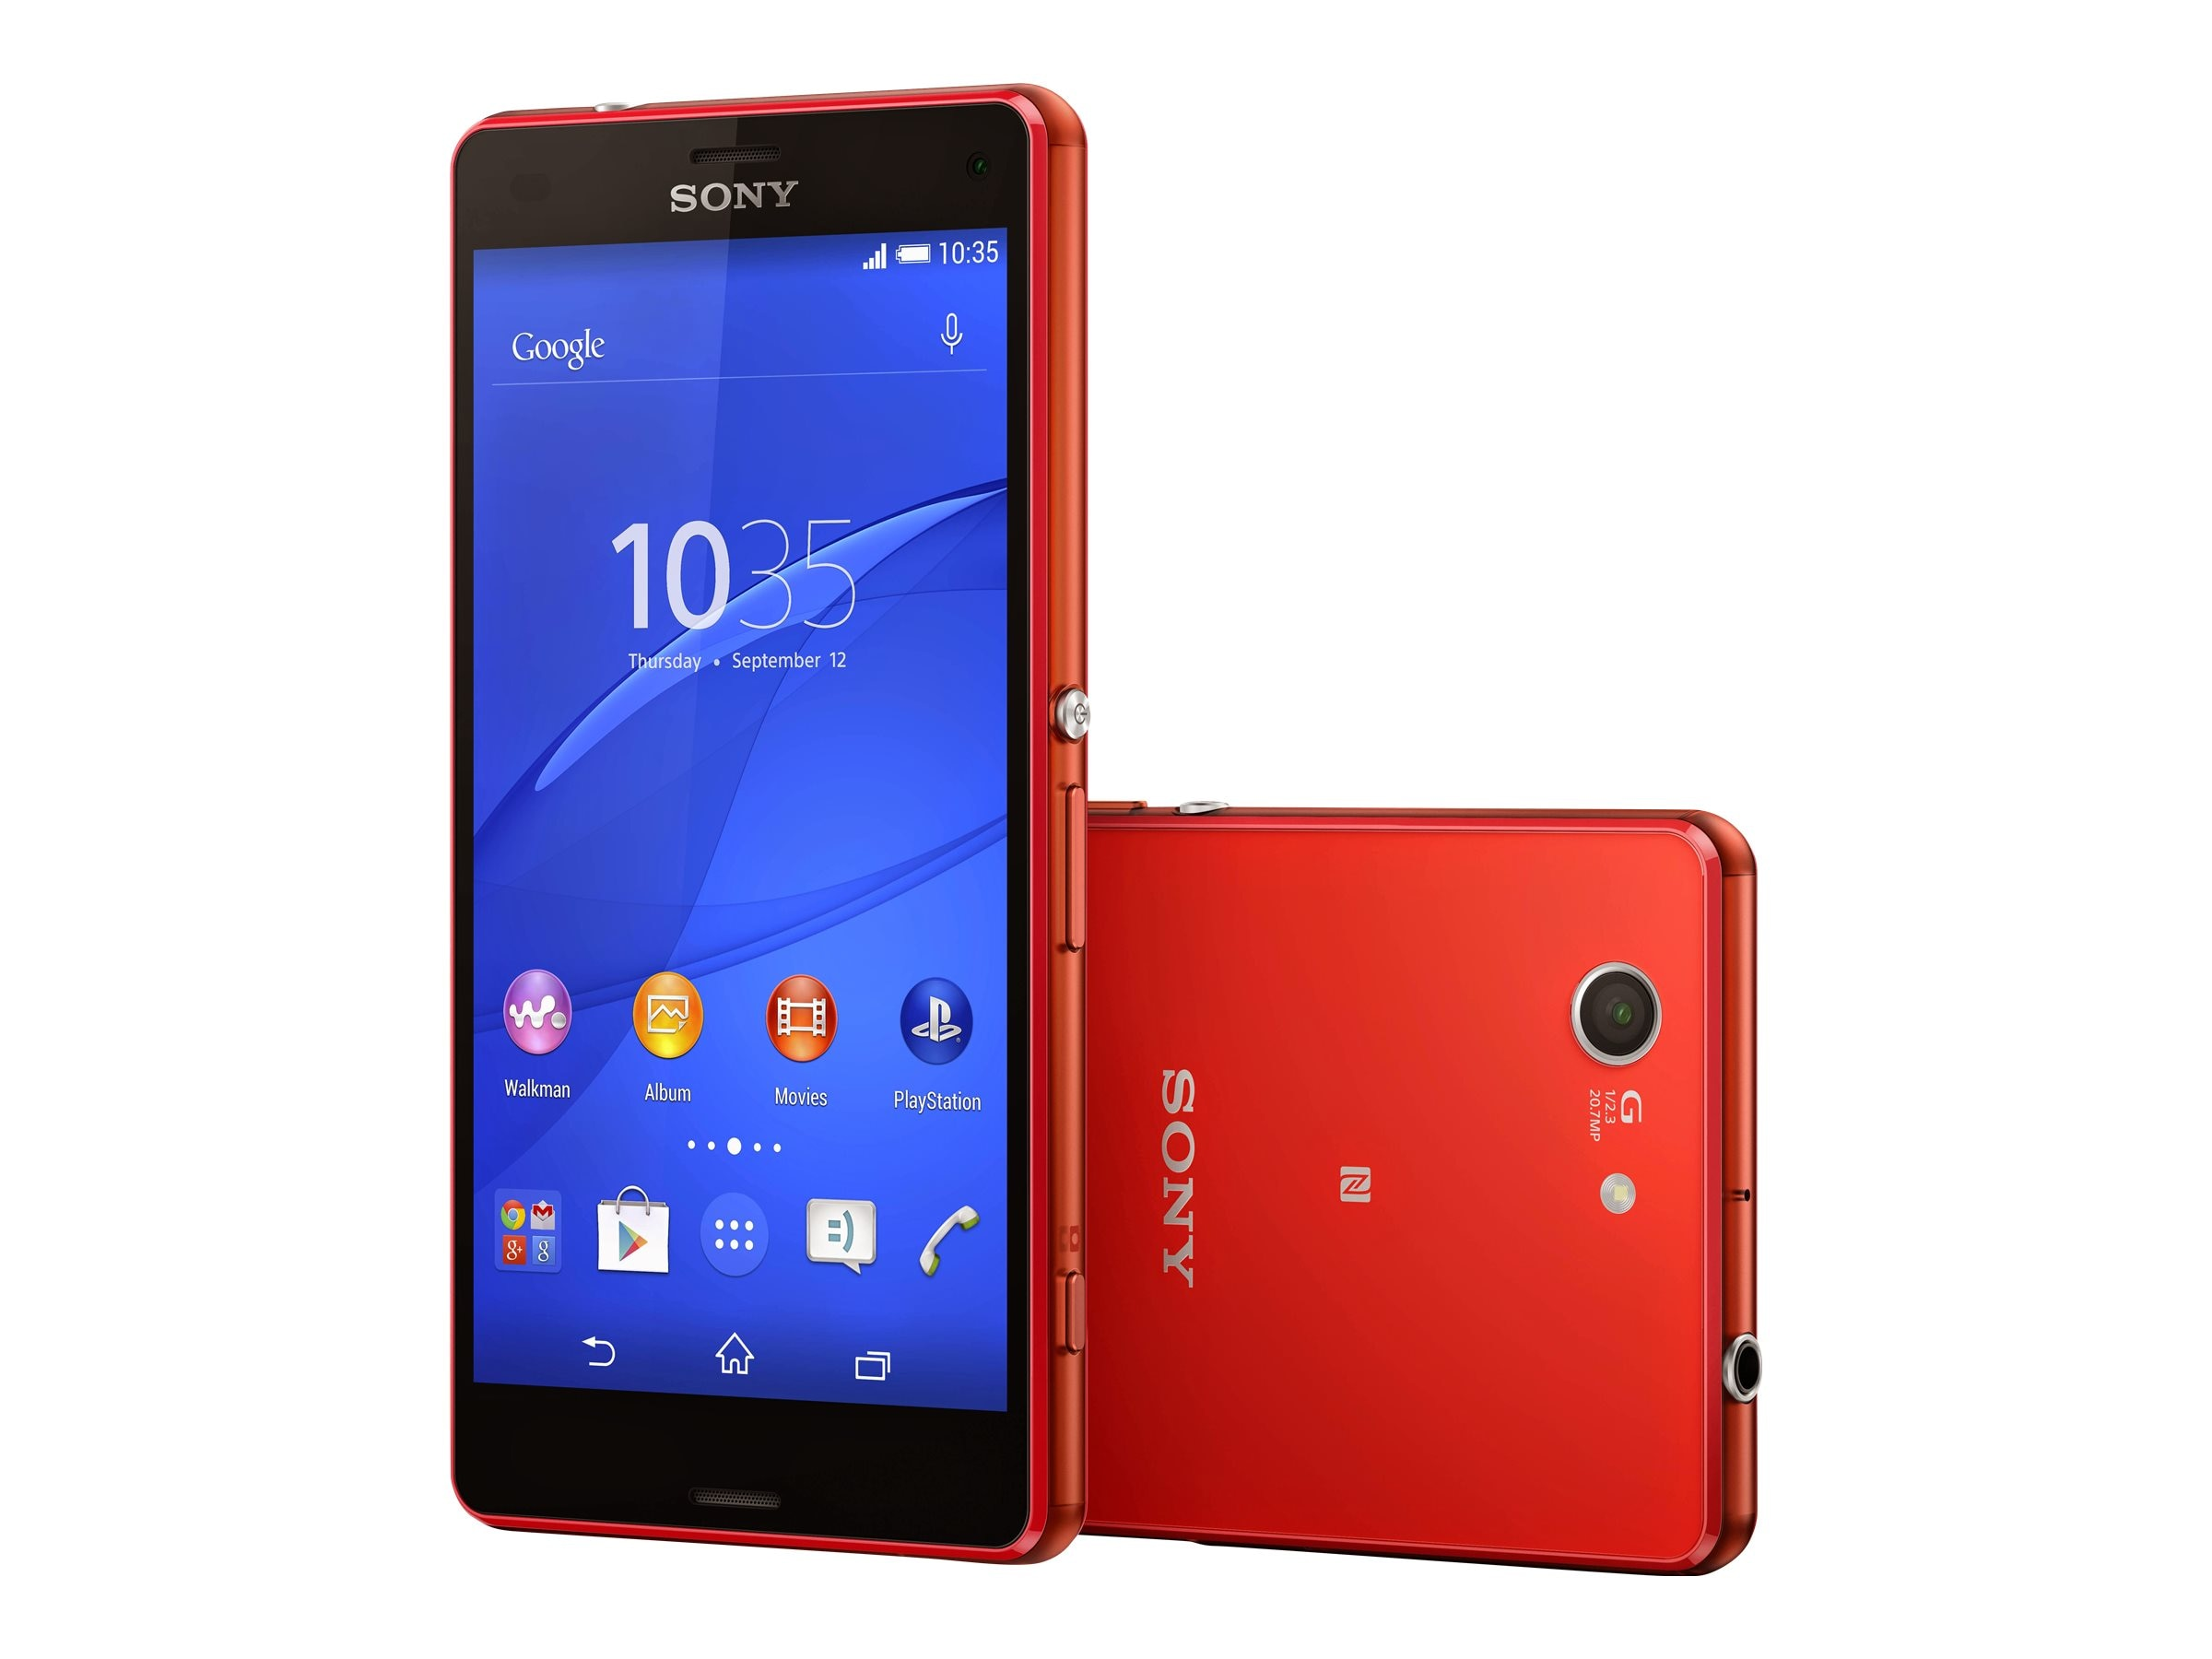 Sony XPeria Z3 Compact LTE D5803 4.6 2.5GHZ 4CR 16GB 20.7MP NFC Phone - Green, 1290-0542